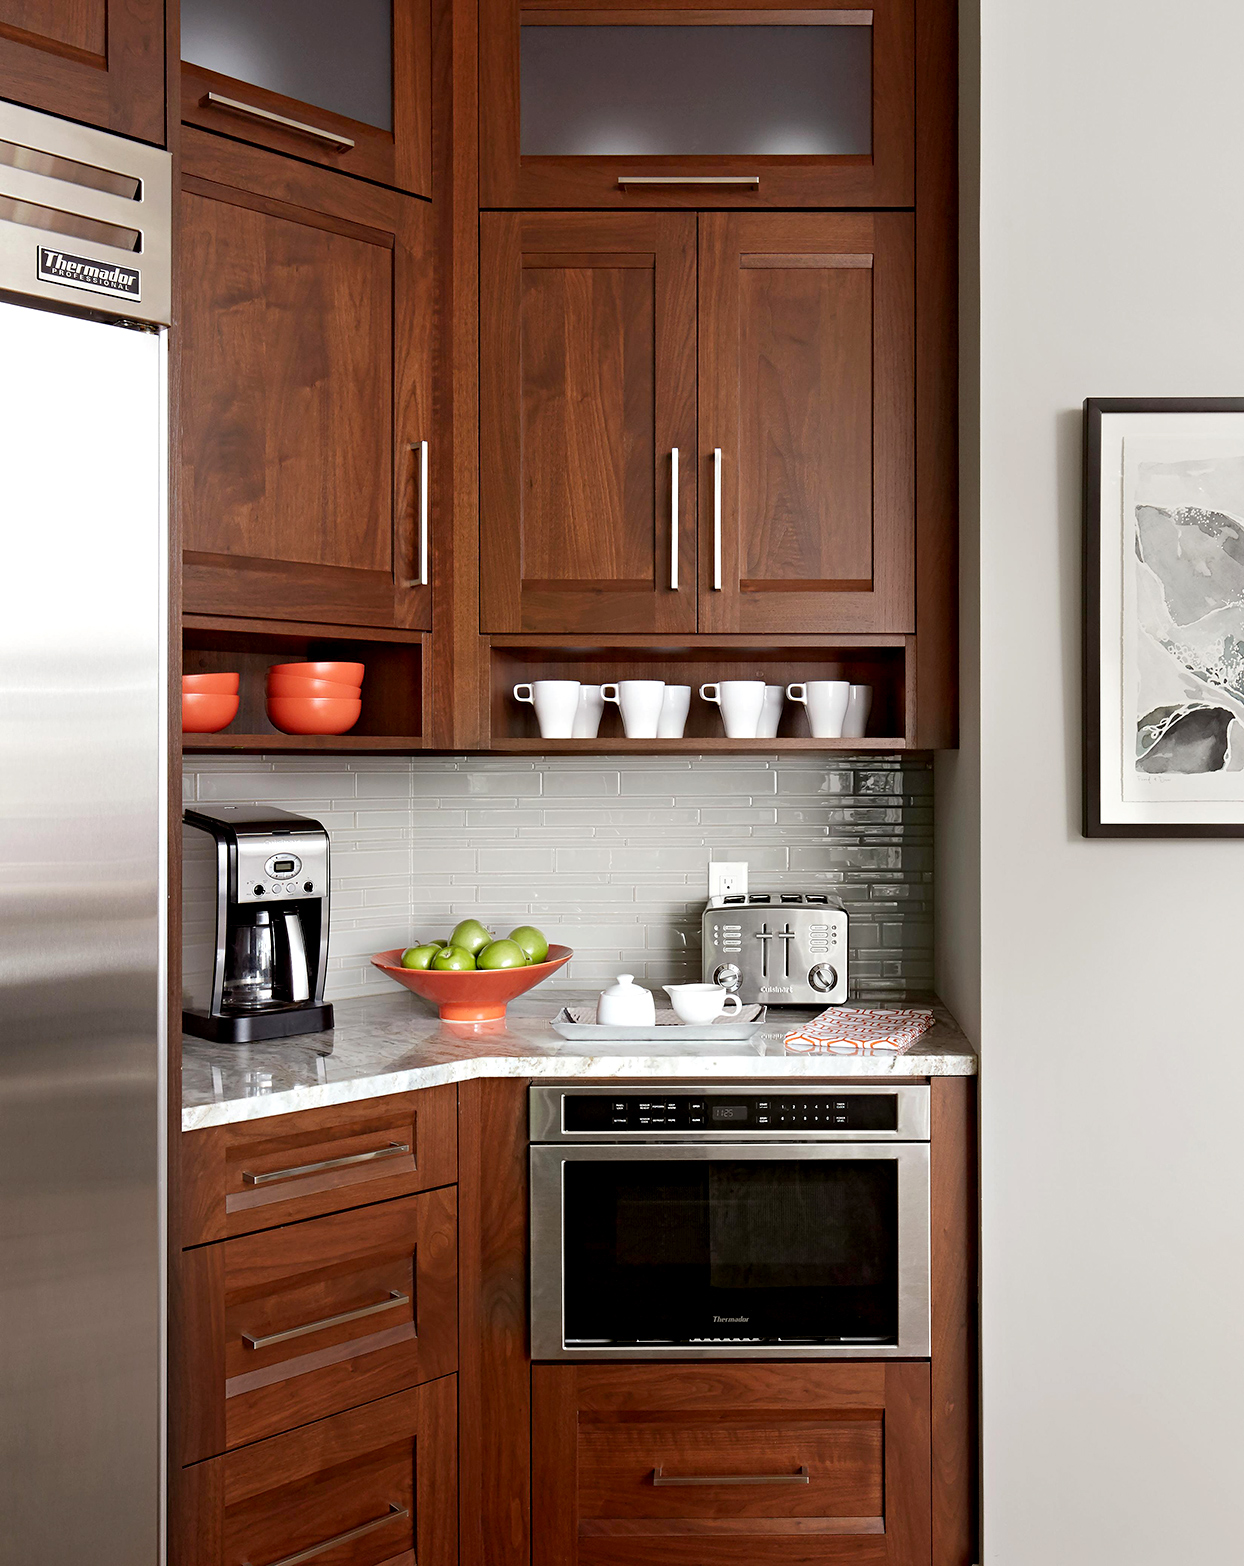 Espresso wood cabinetry with white marble countertop